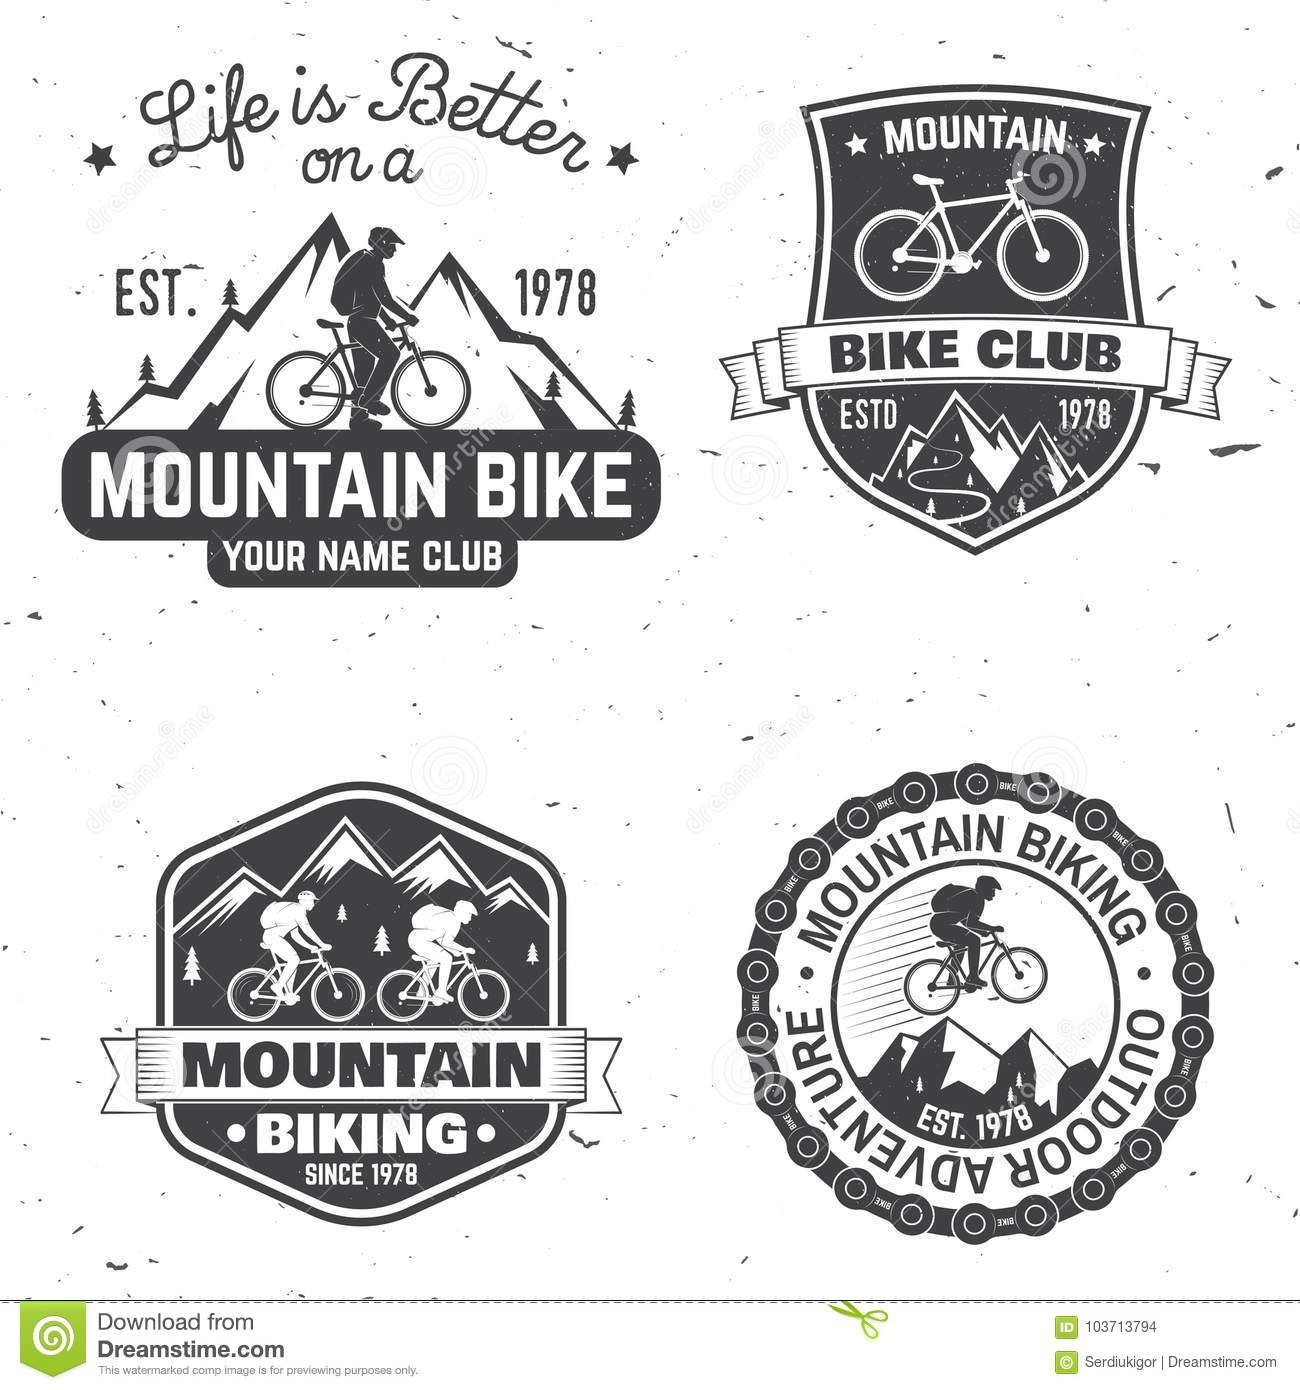 Reeks Berg biking clubs Vector illustratie